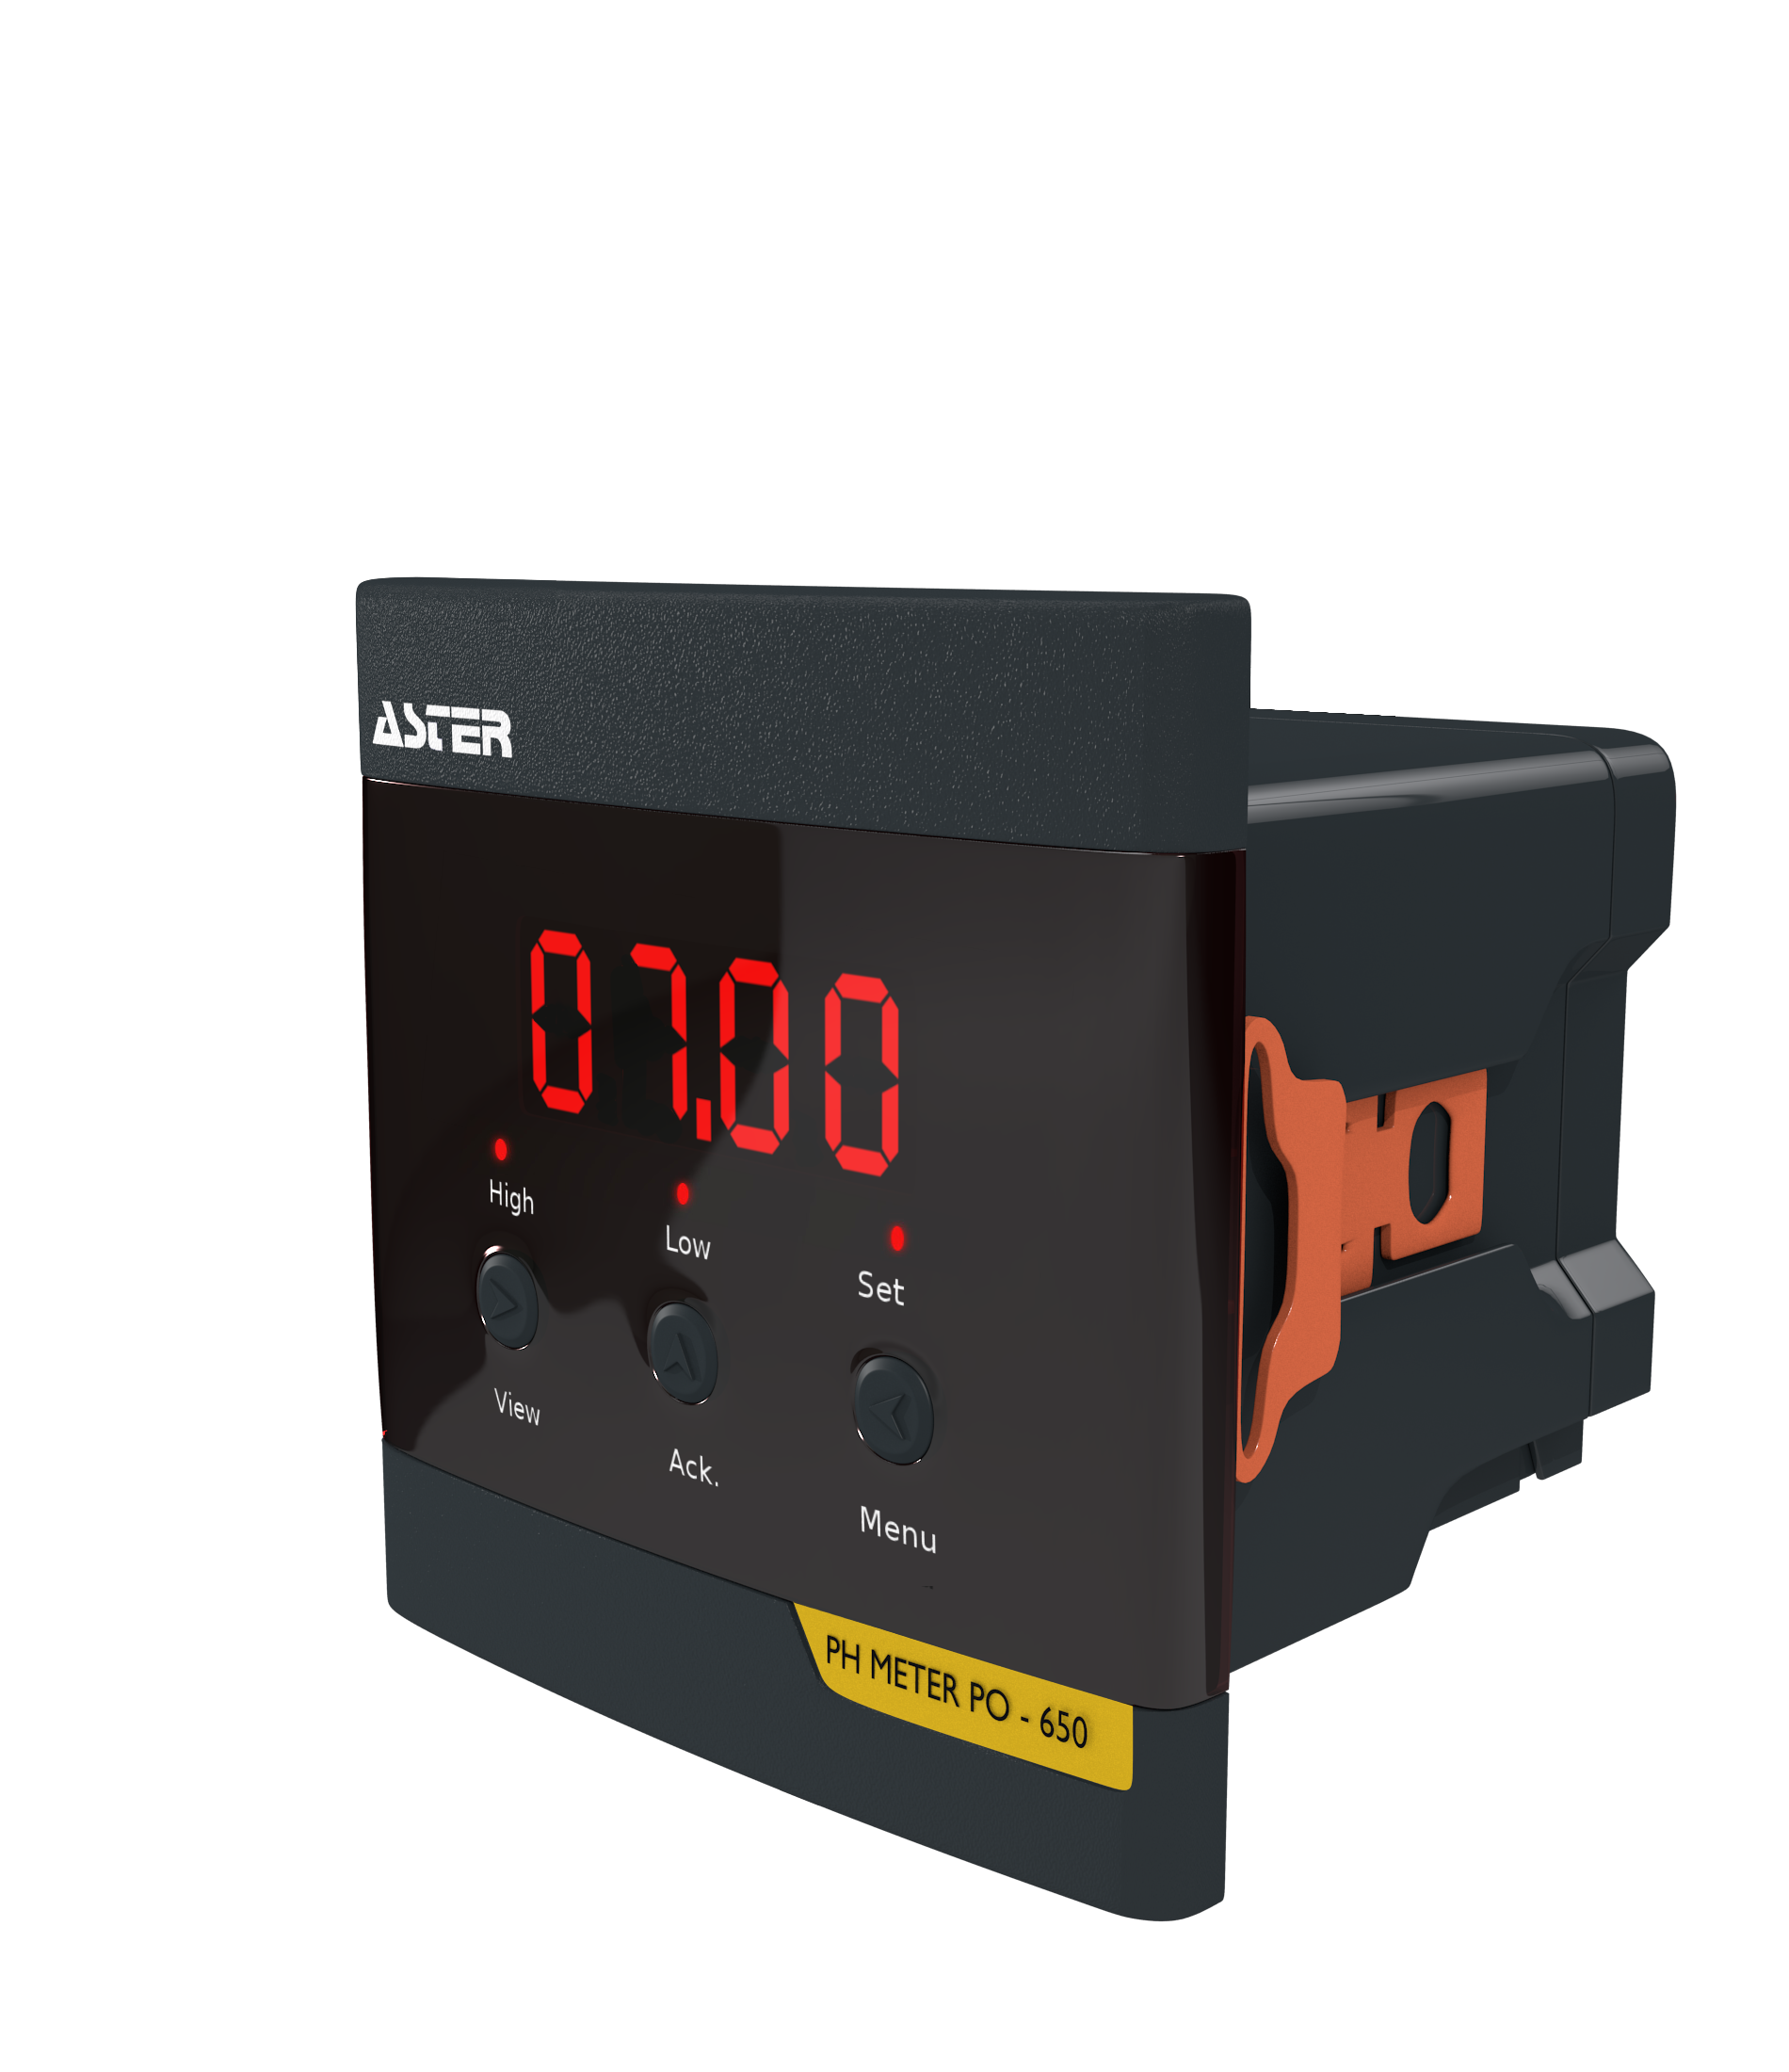 On line pH meters